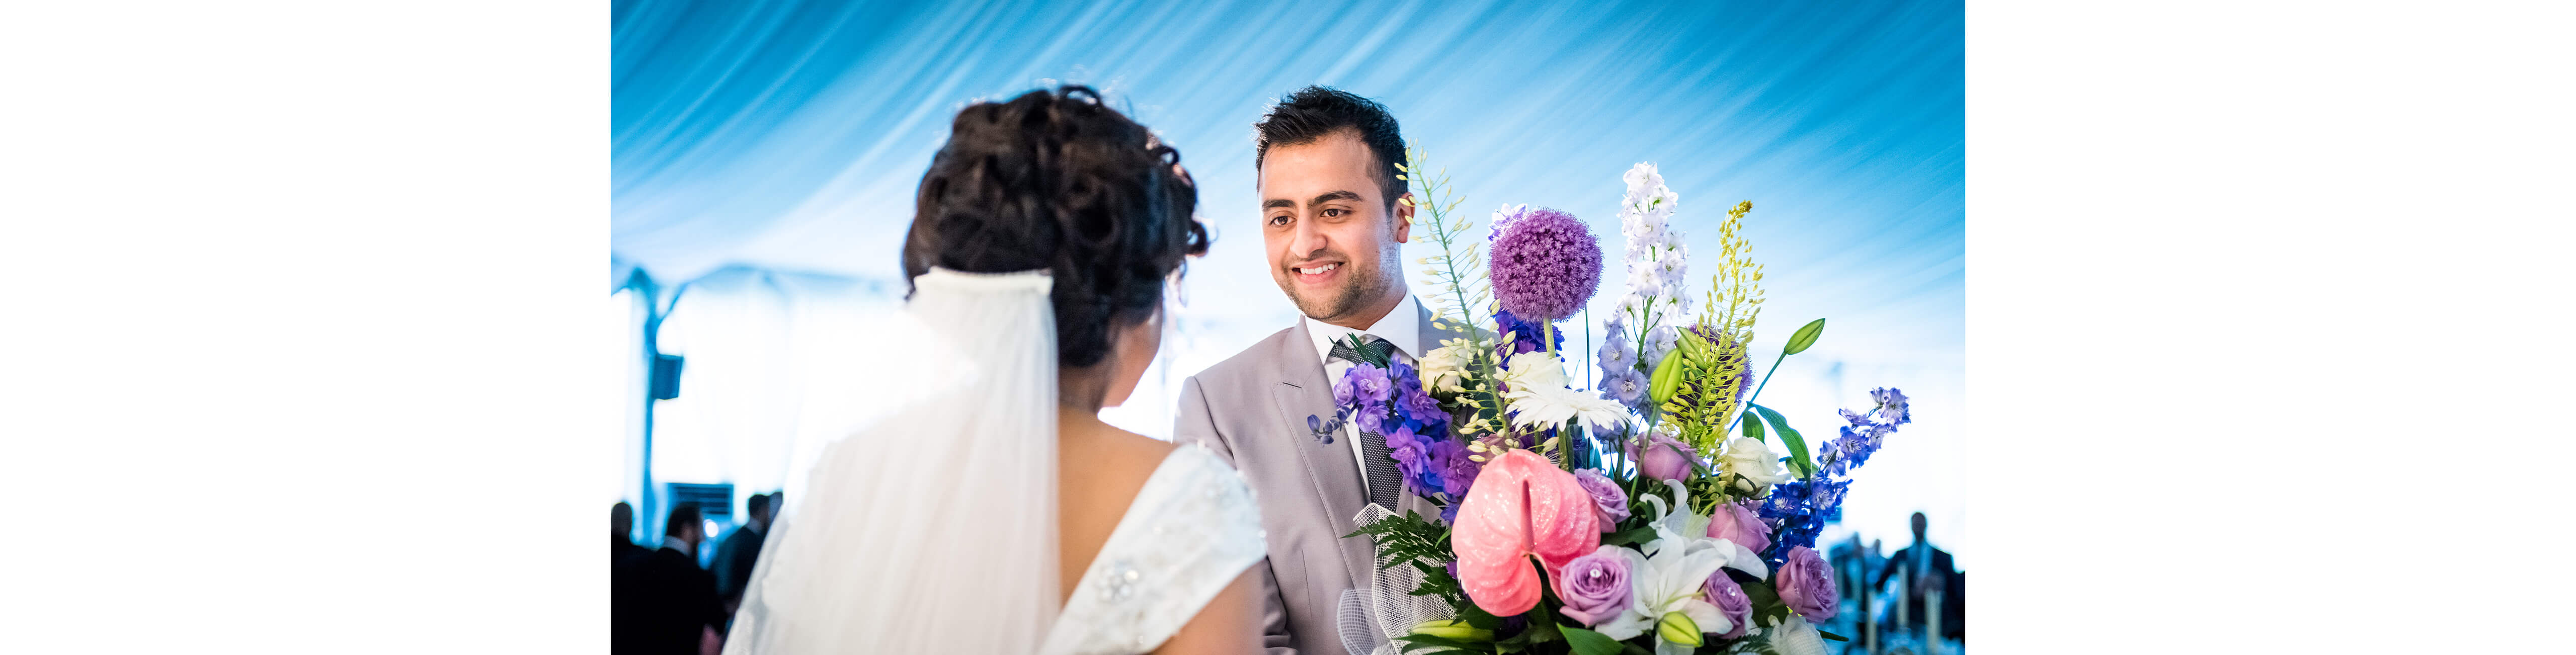 Groom-greets-Bride-with-bouquet